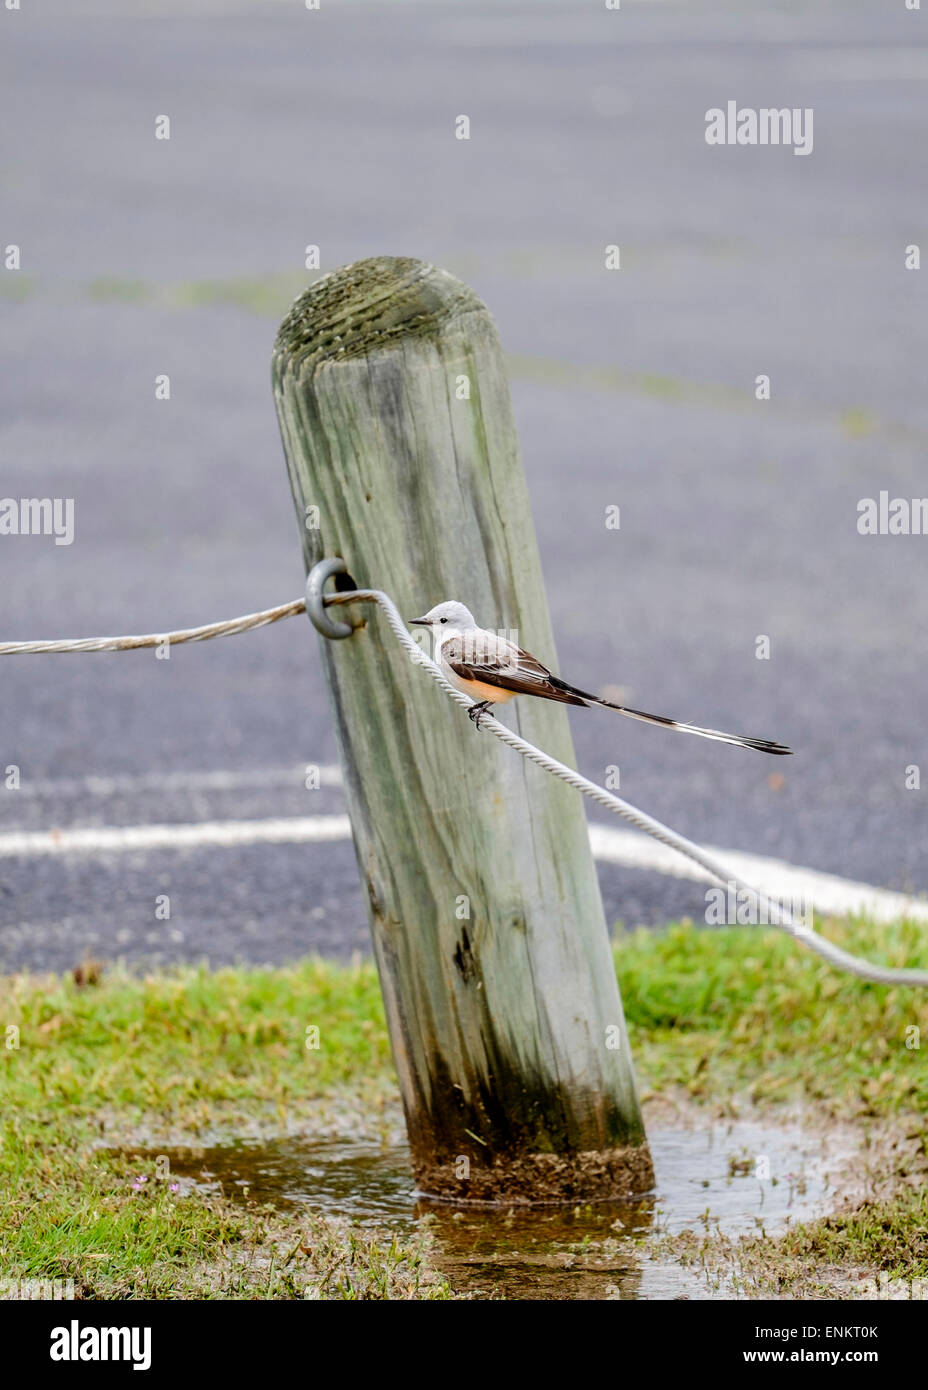 Cable Wire Fence Stock Photos & Cable Wire Fence Stock Images - Alamy